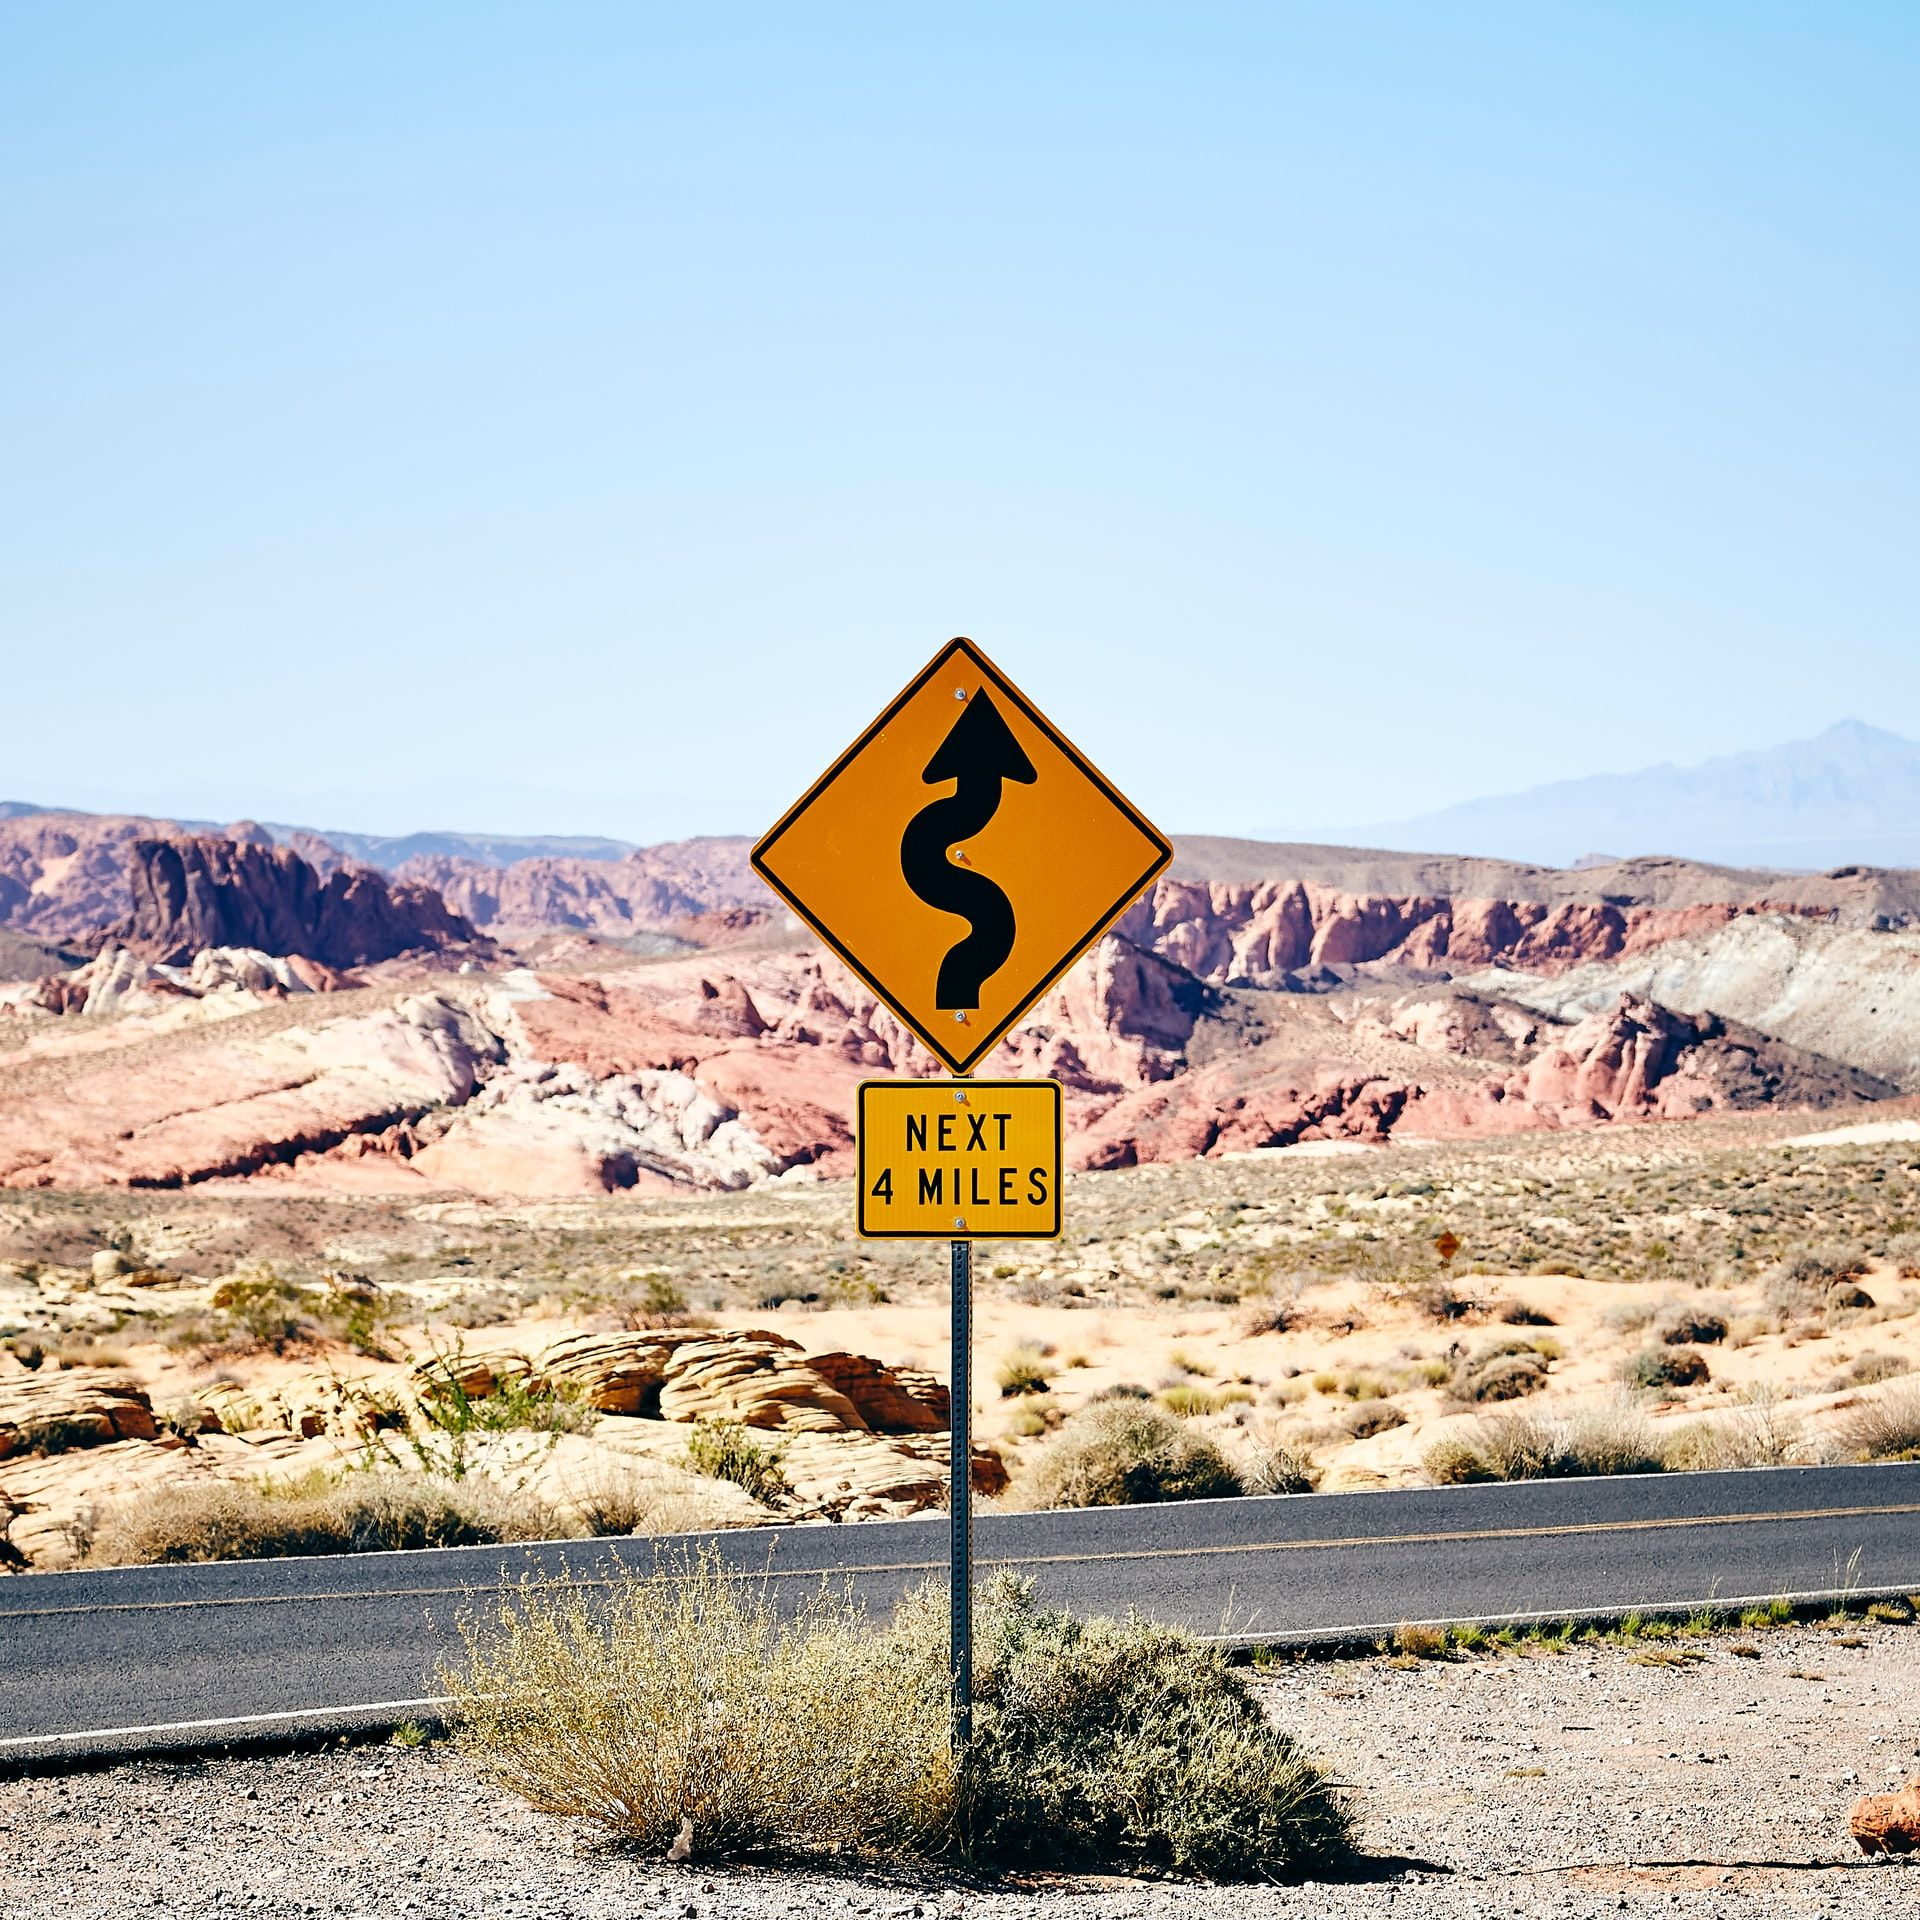 Sign on desert road that shows curves for the next four miles